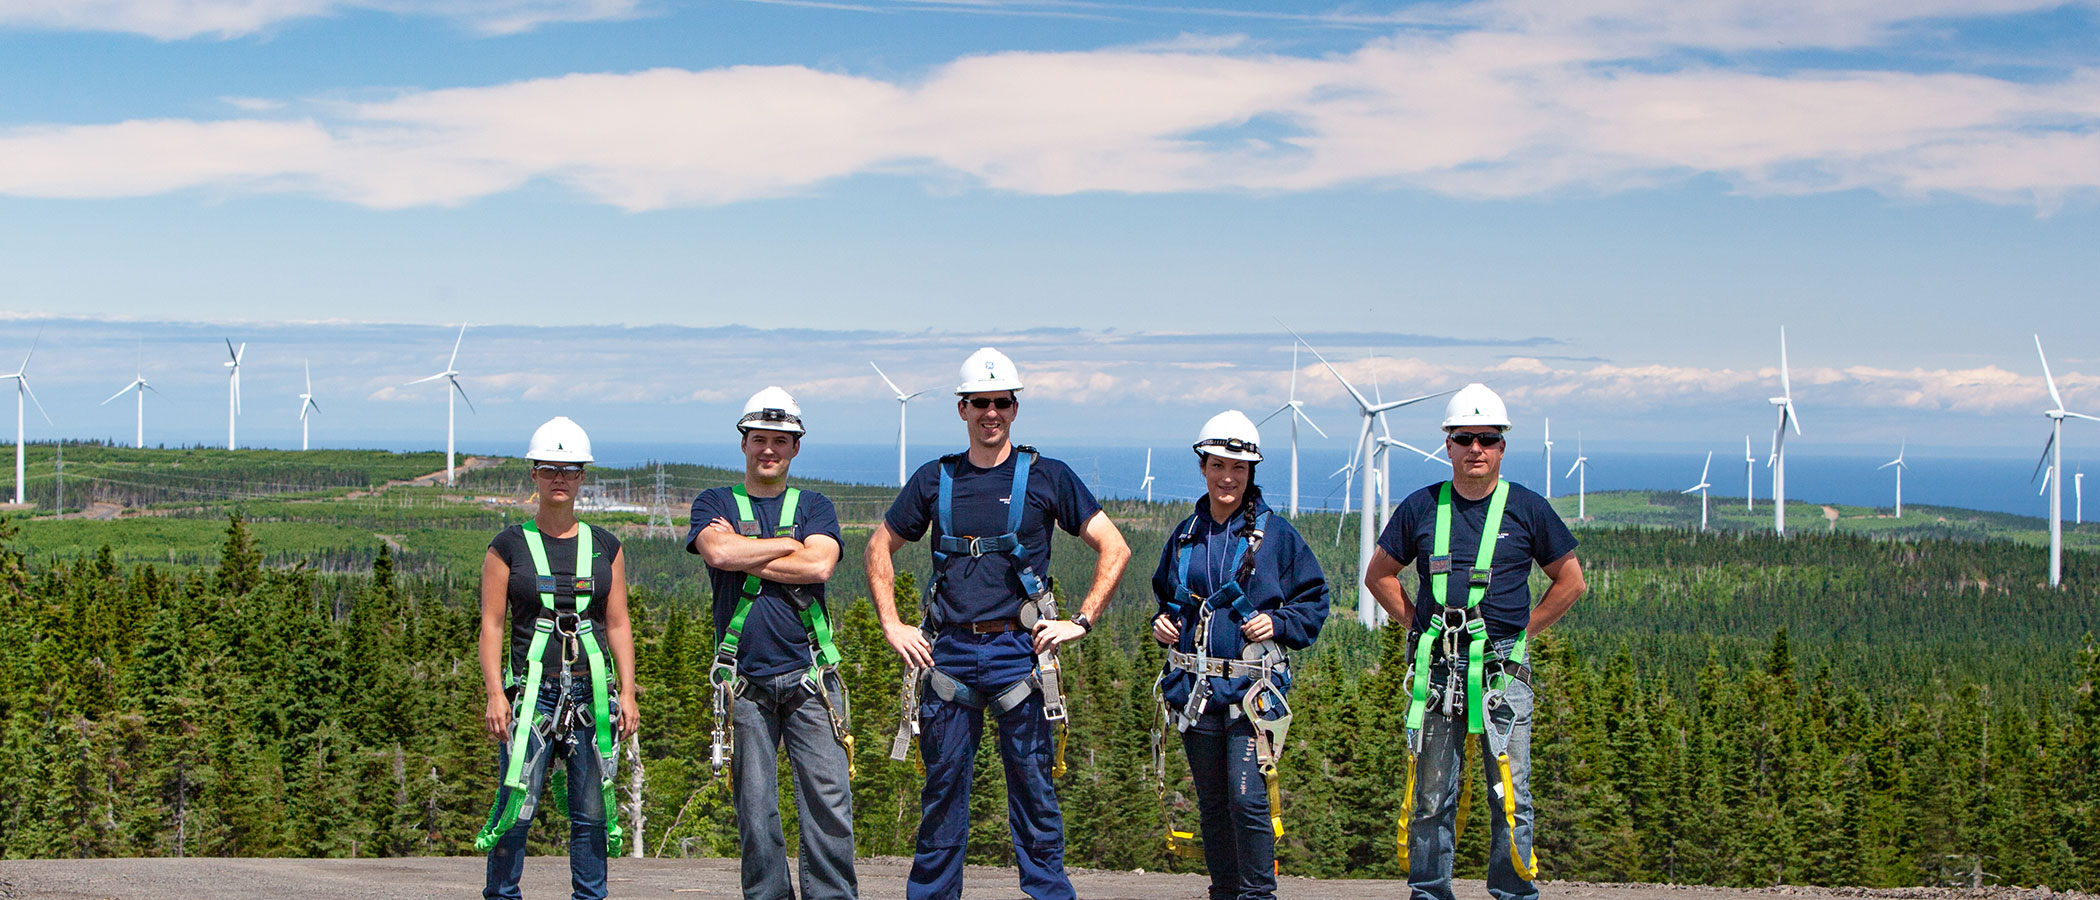 Five female and male utility engineers in climbing harnesses stand on a clearing above a forest sprinkled with dozens of wind turbines.